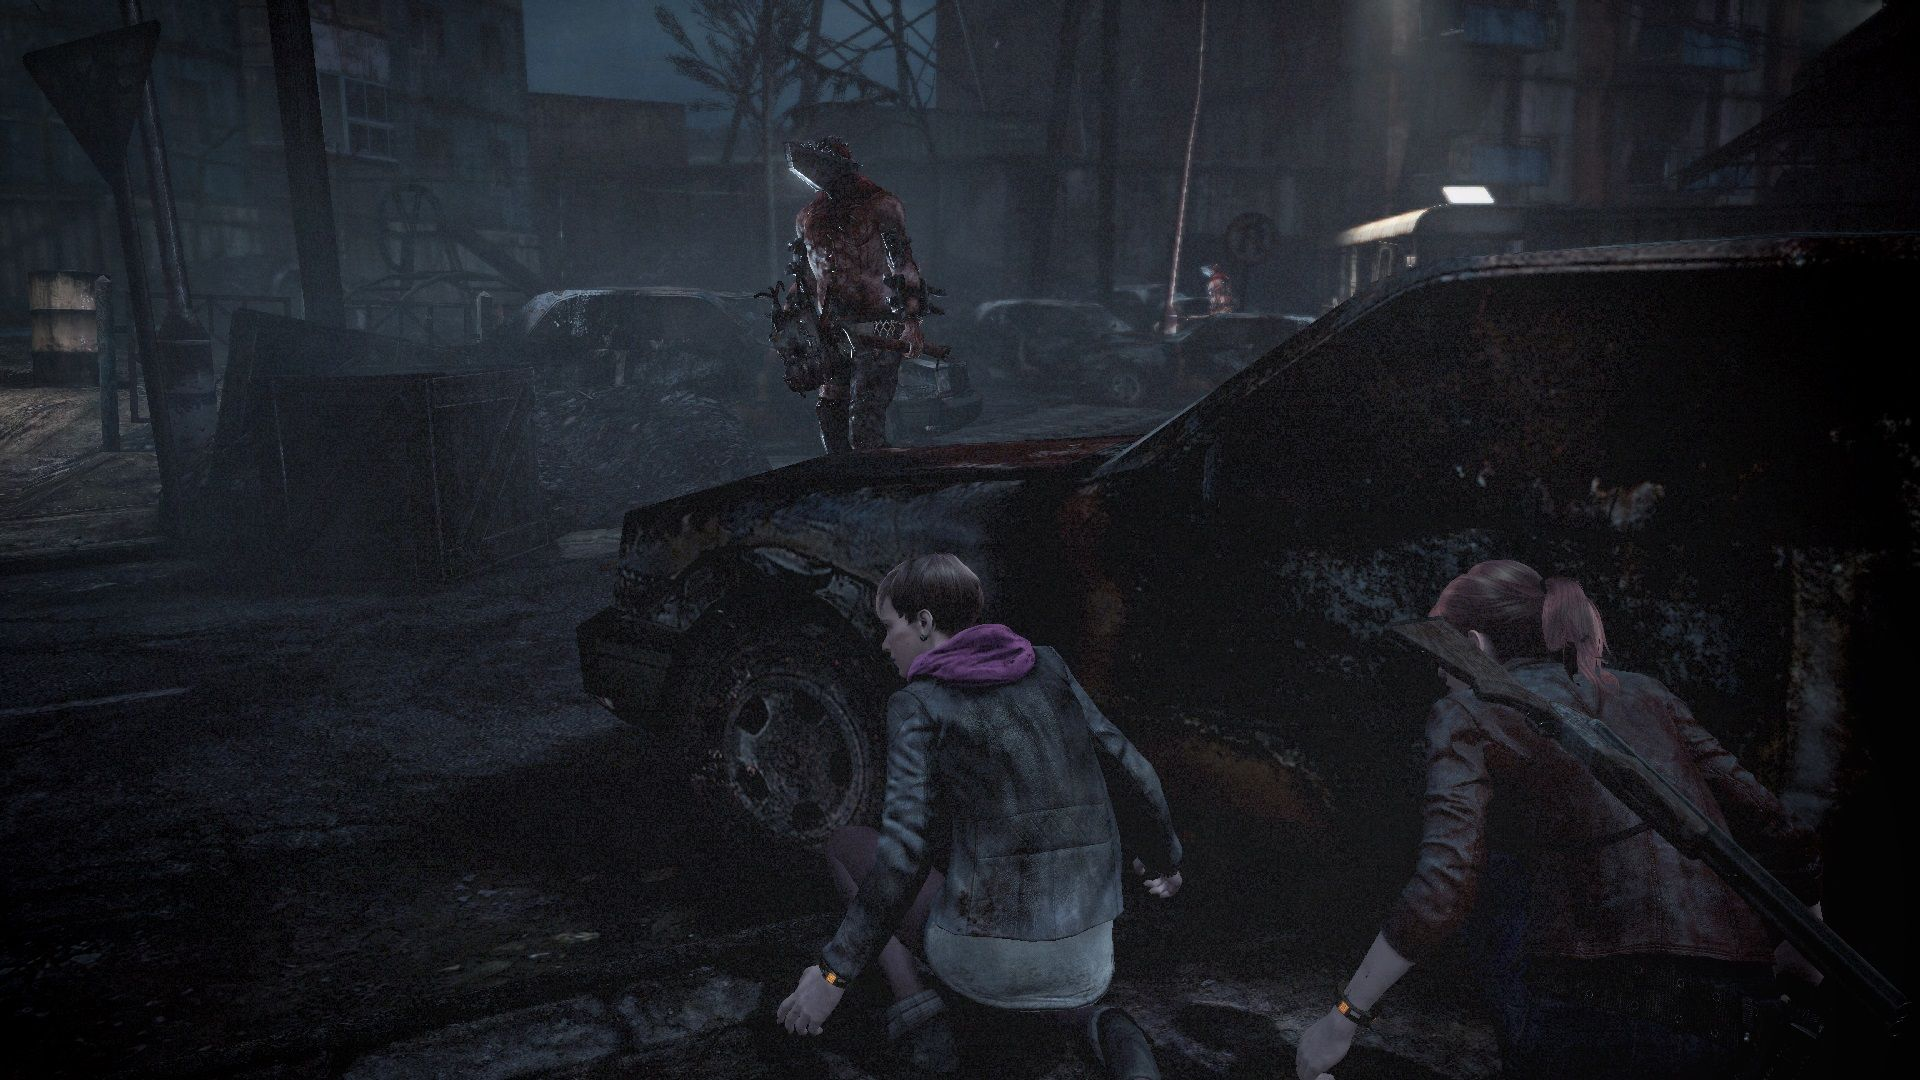 New Resident Evil Revelations 2 Screenshots Feature Terrifying